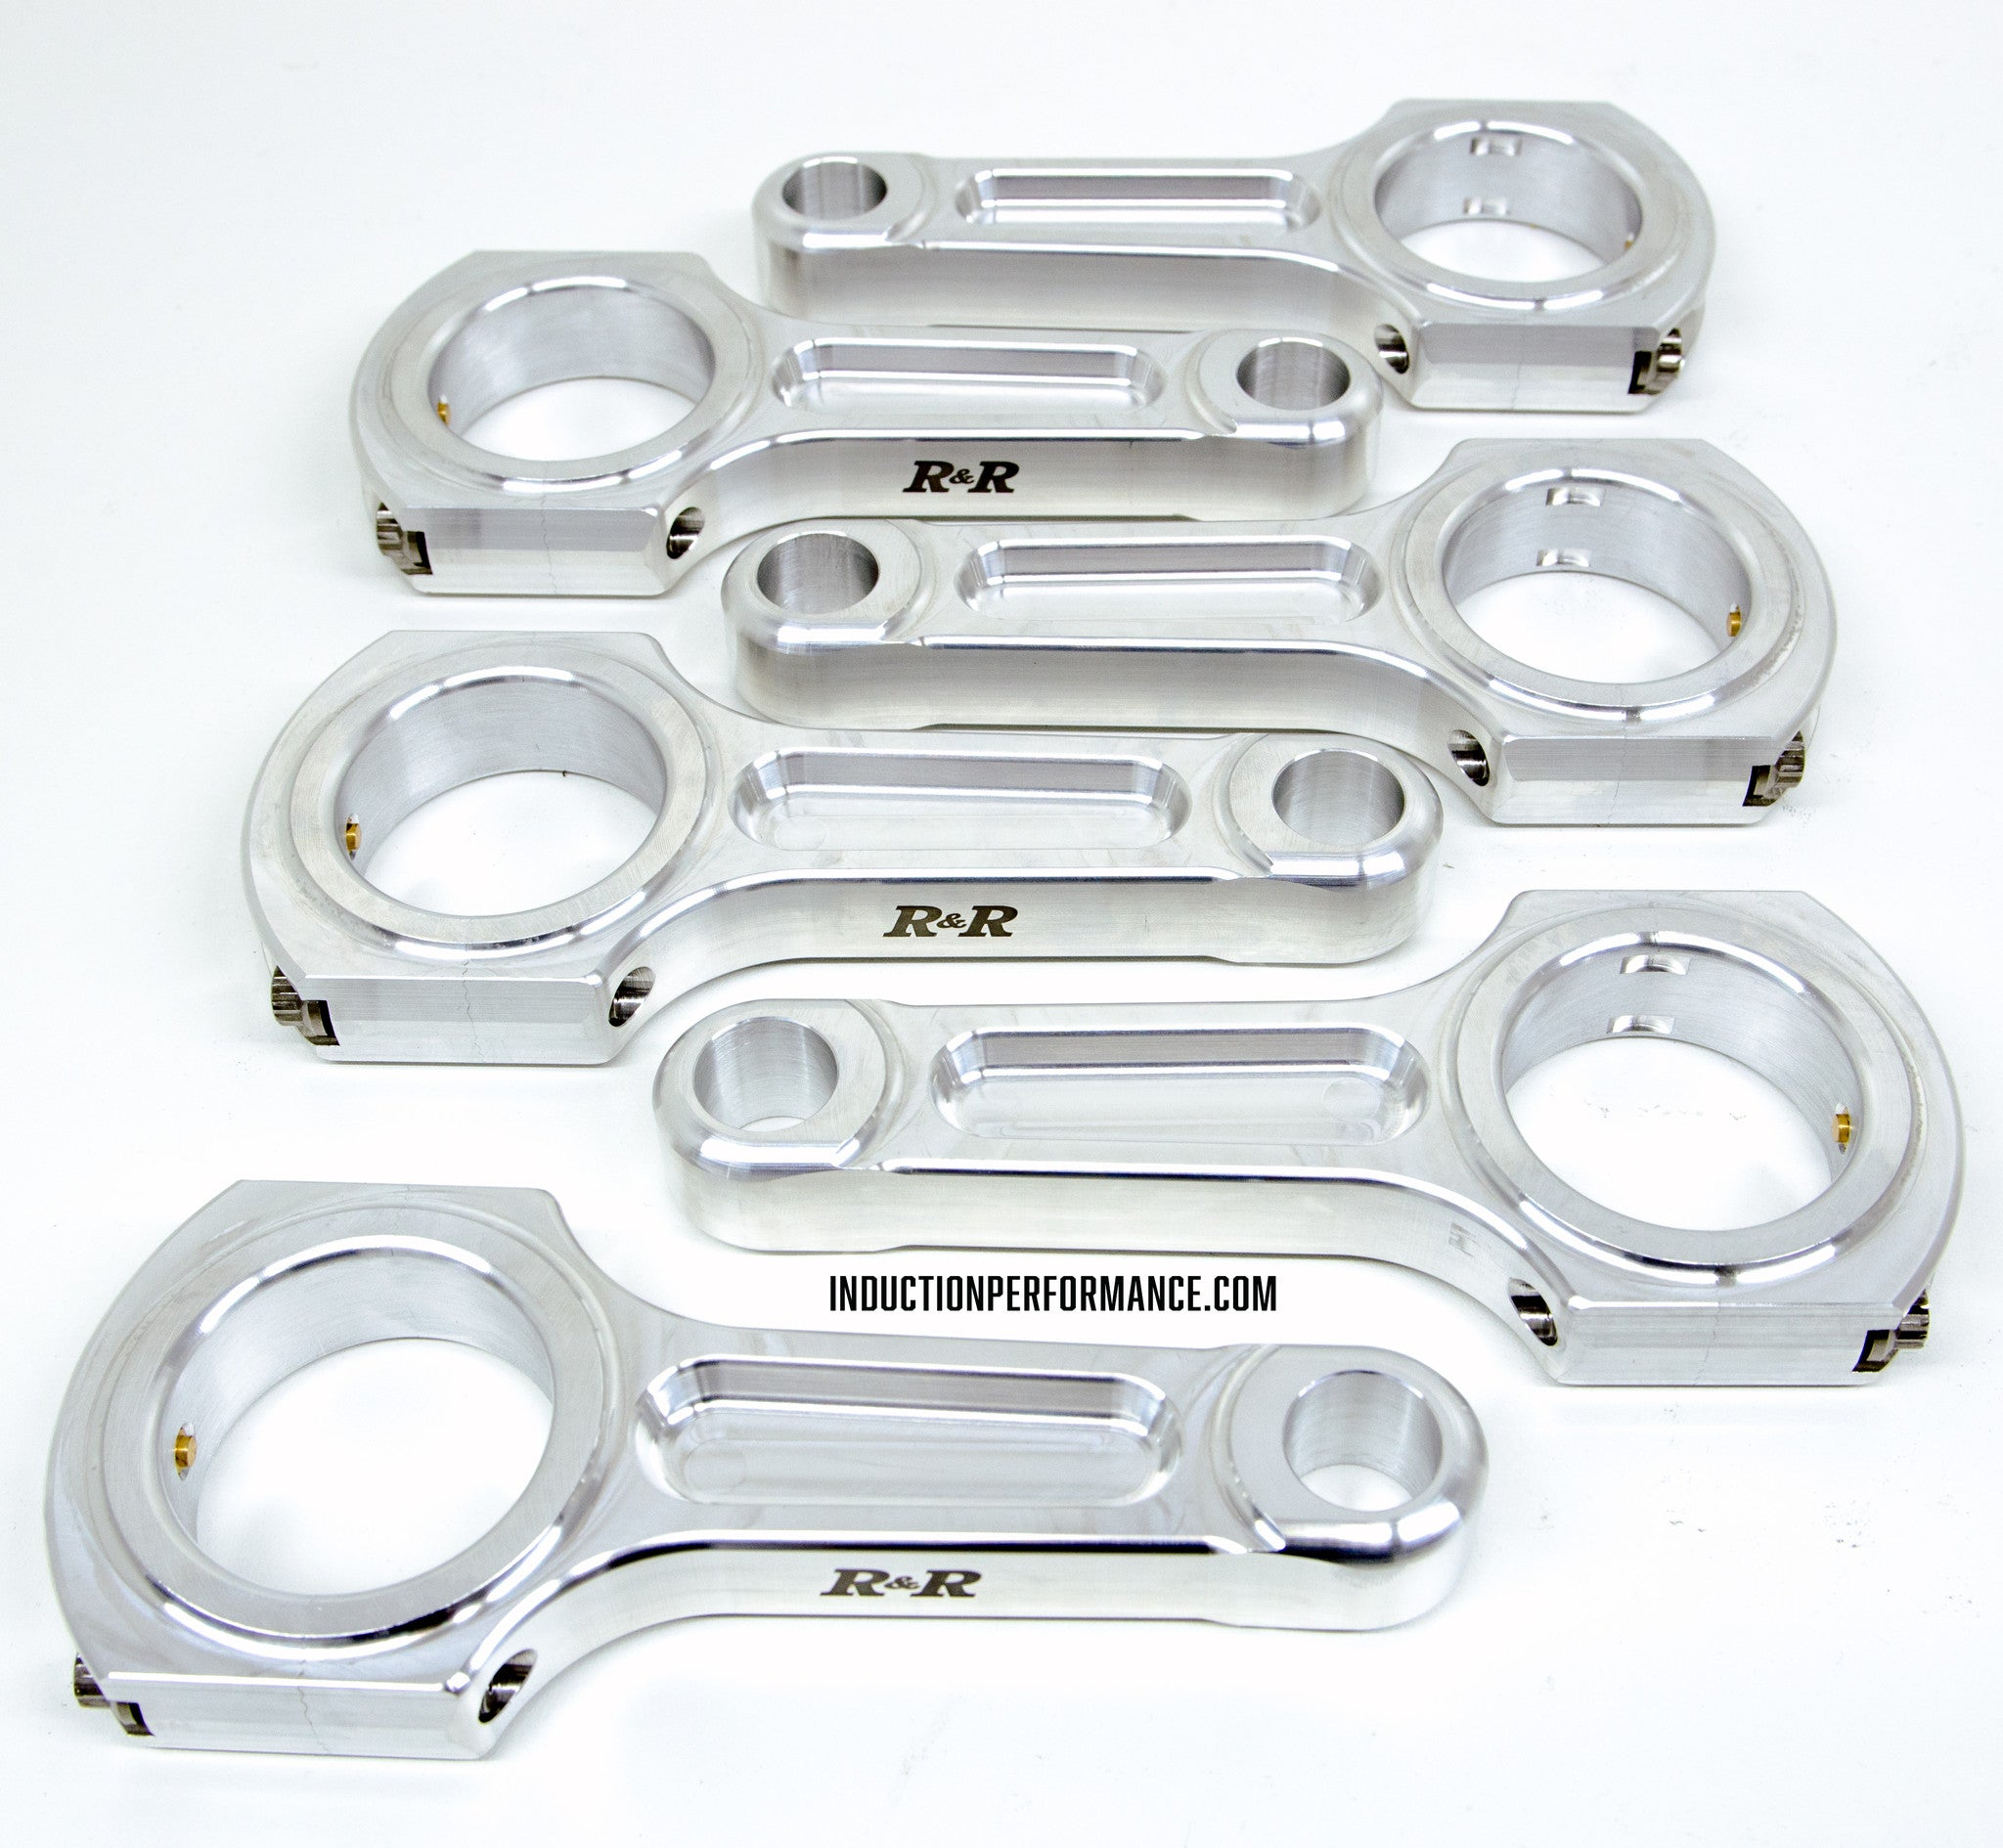 R&R Aluminum Connecting Rods for 2JZ-GTE